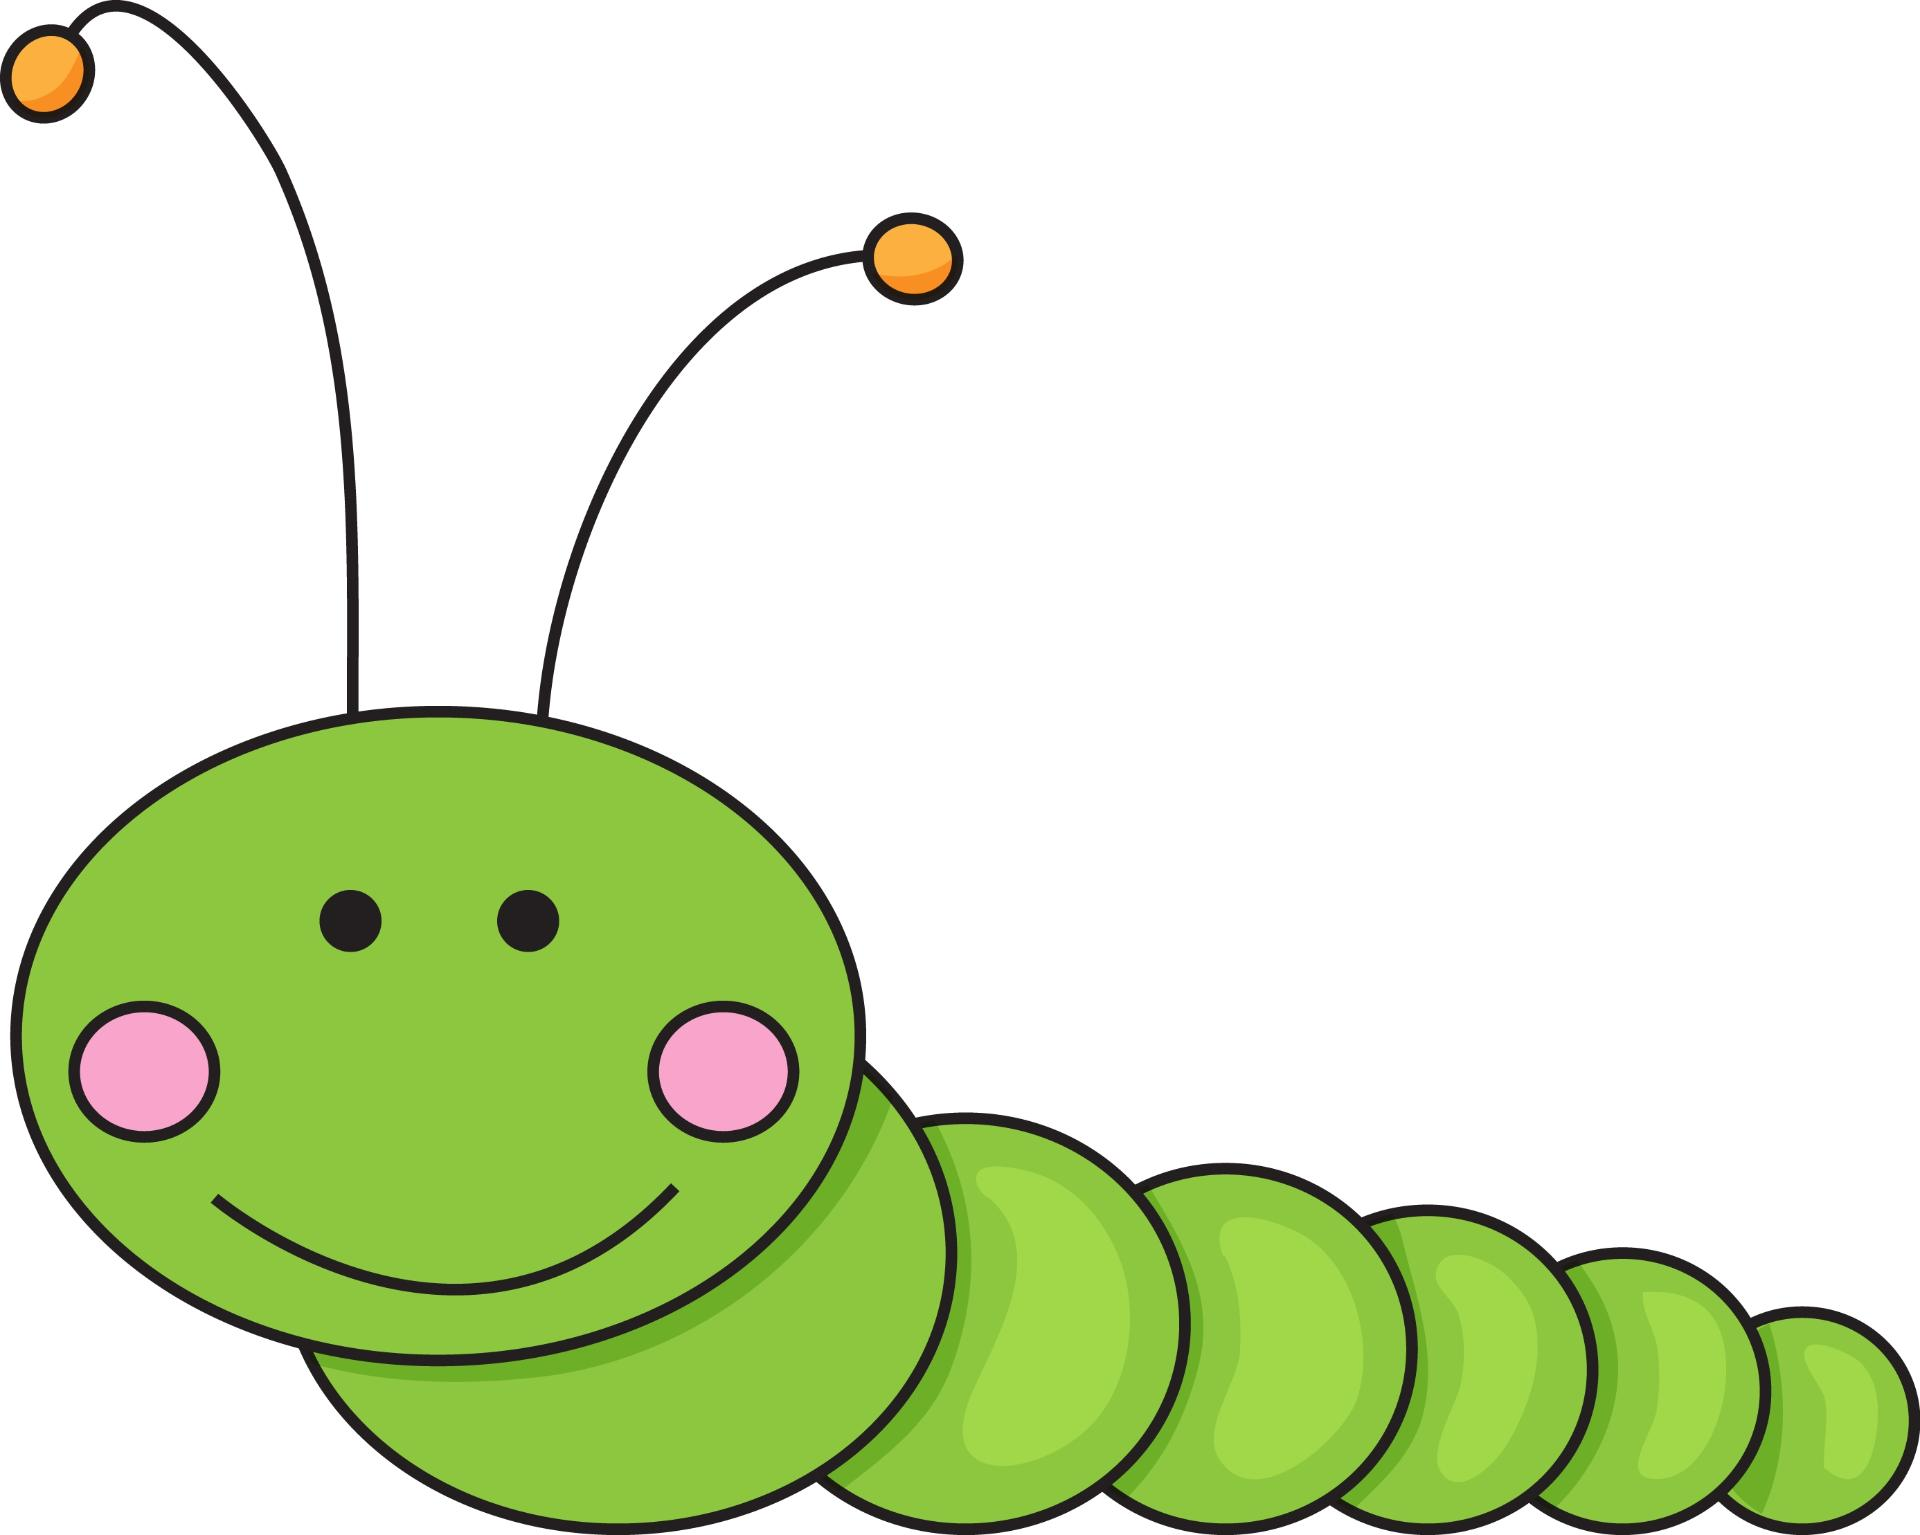 green-cute-caterpillar-clipart-the-cliparts-throughout-cute-caterpillar-clipart[1](2)